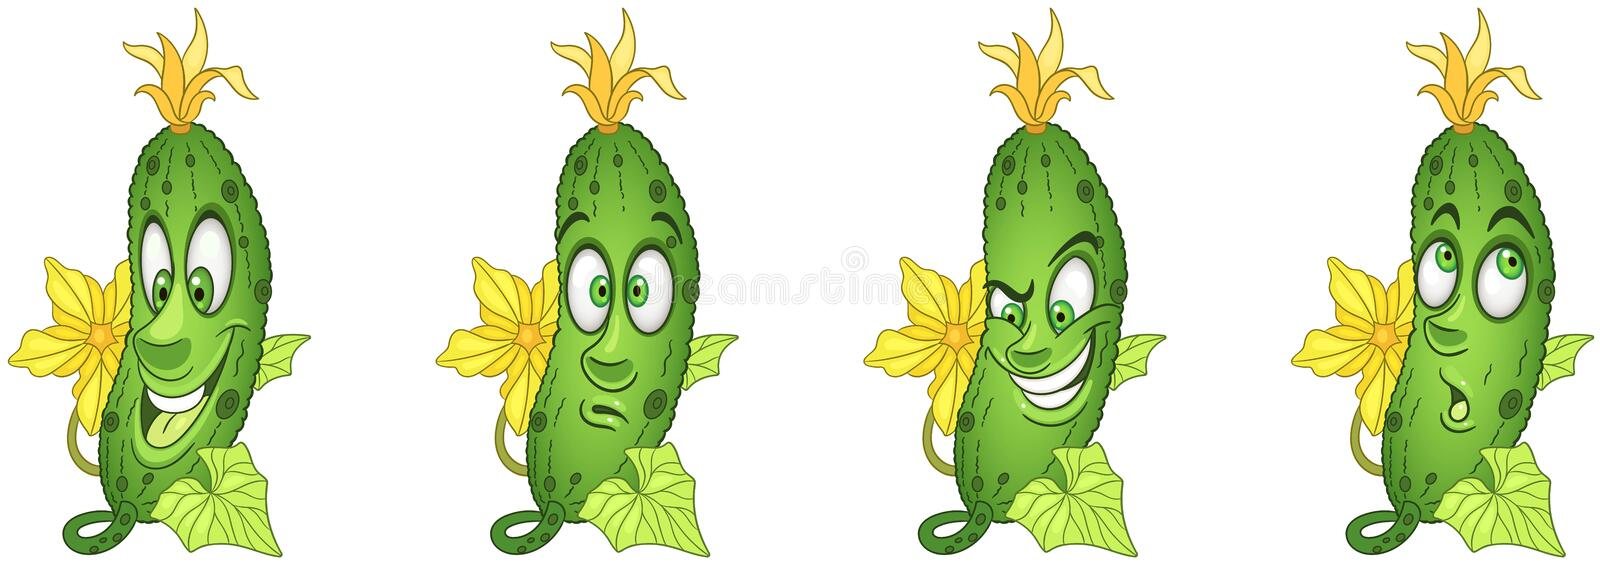 Cucumber. Vegetable Food concept royalty free stock images